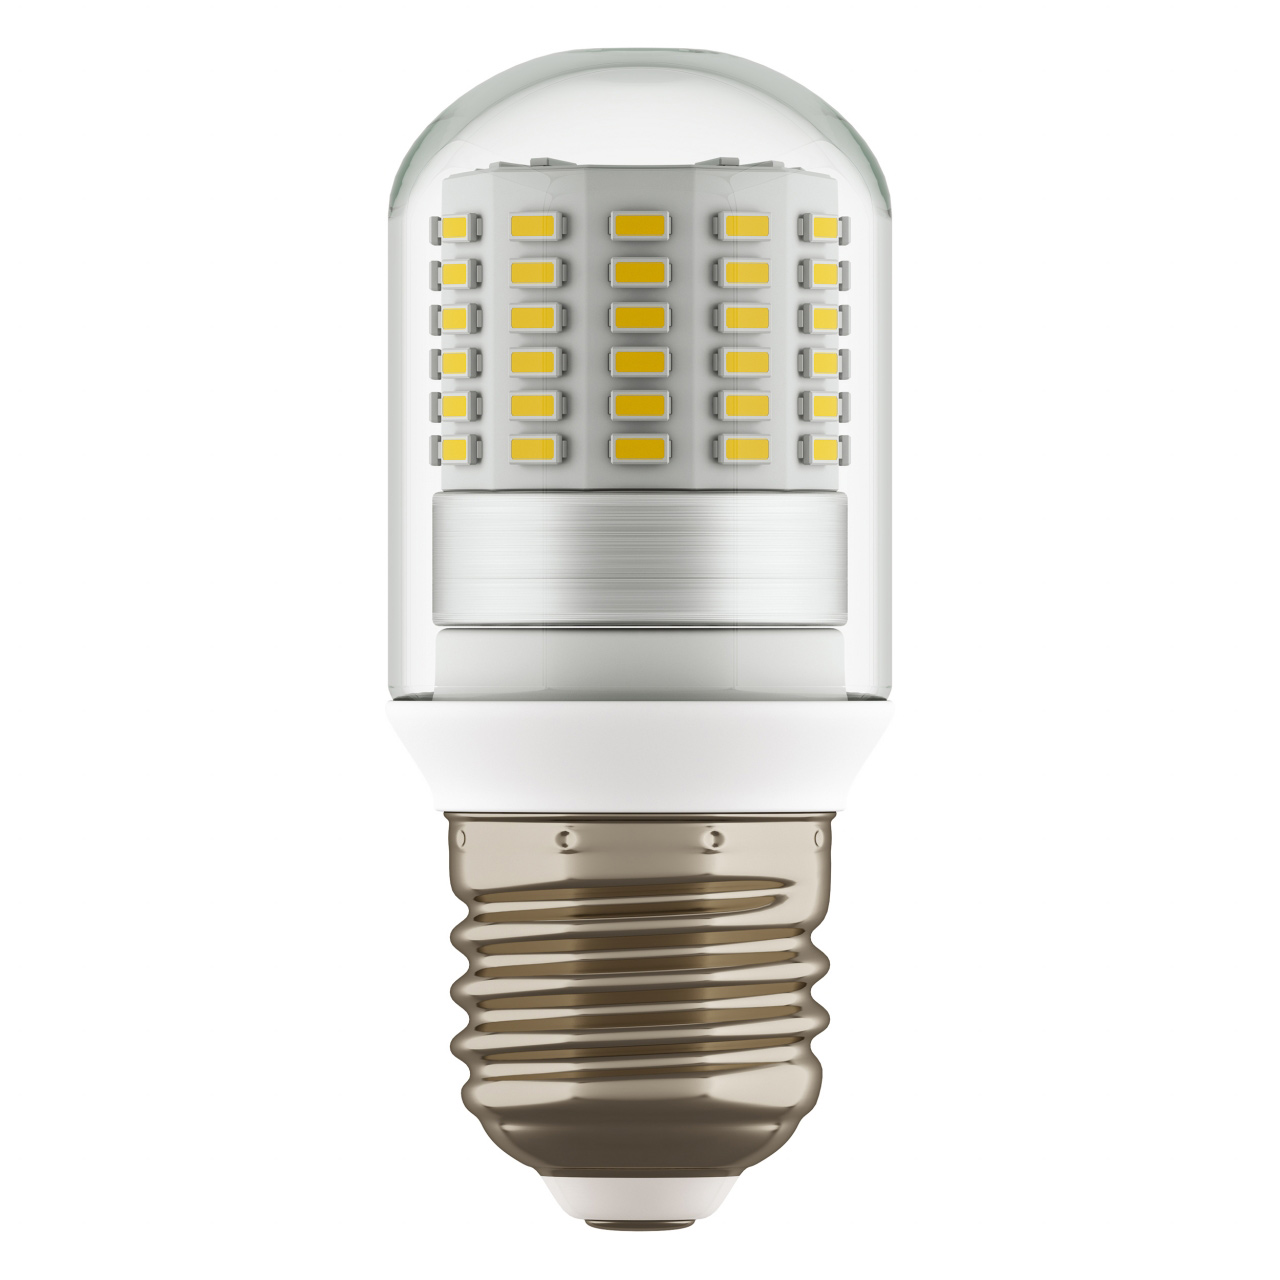 Лампа LED 220V T35 E27 9W=90W 850LM 360G CL 4000K 20000H Lightstar 930904